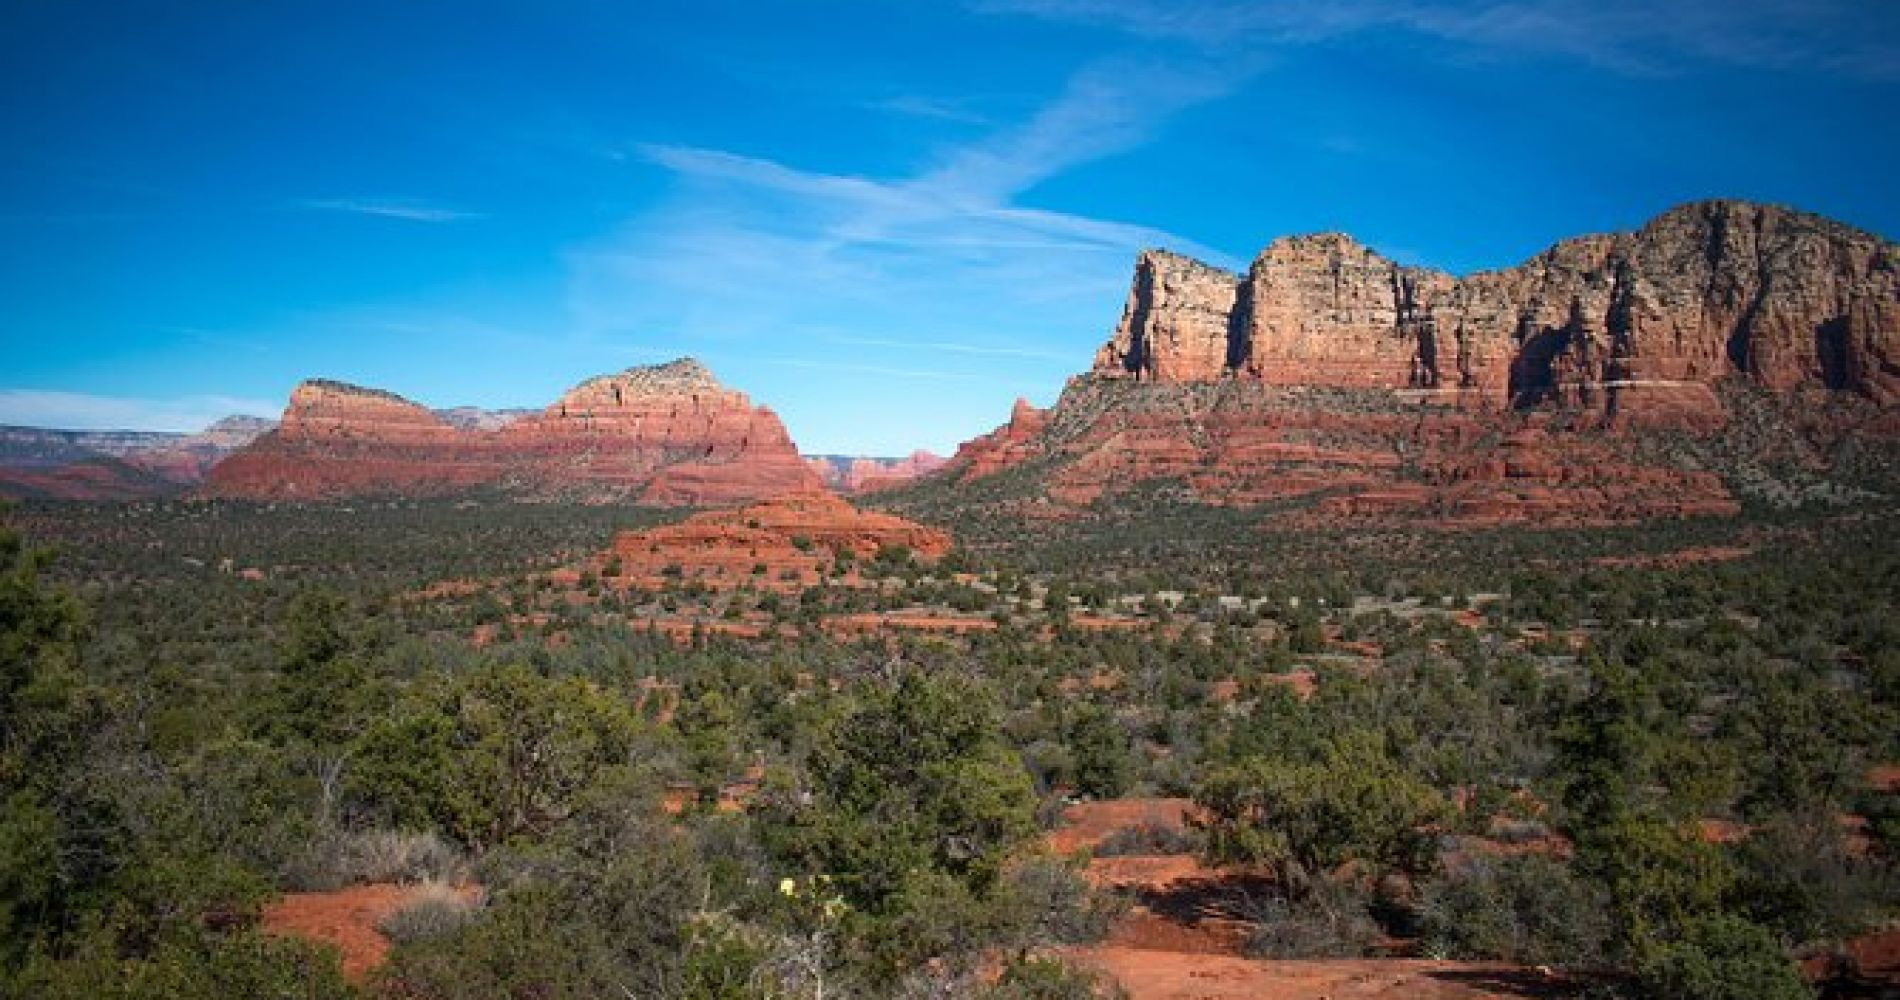 Sedona Red Rock Country and Native American Ruins from Phoenix